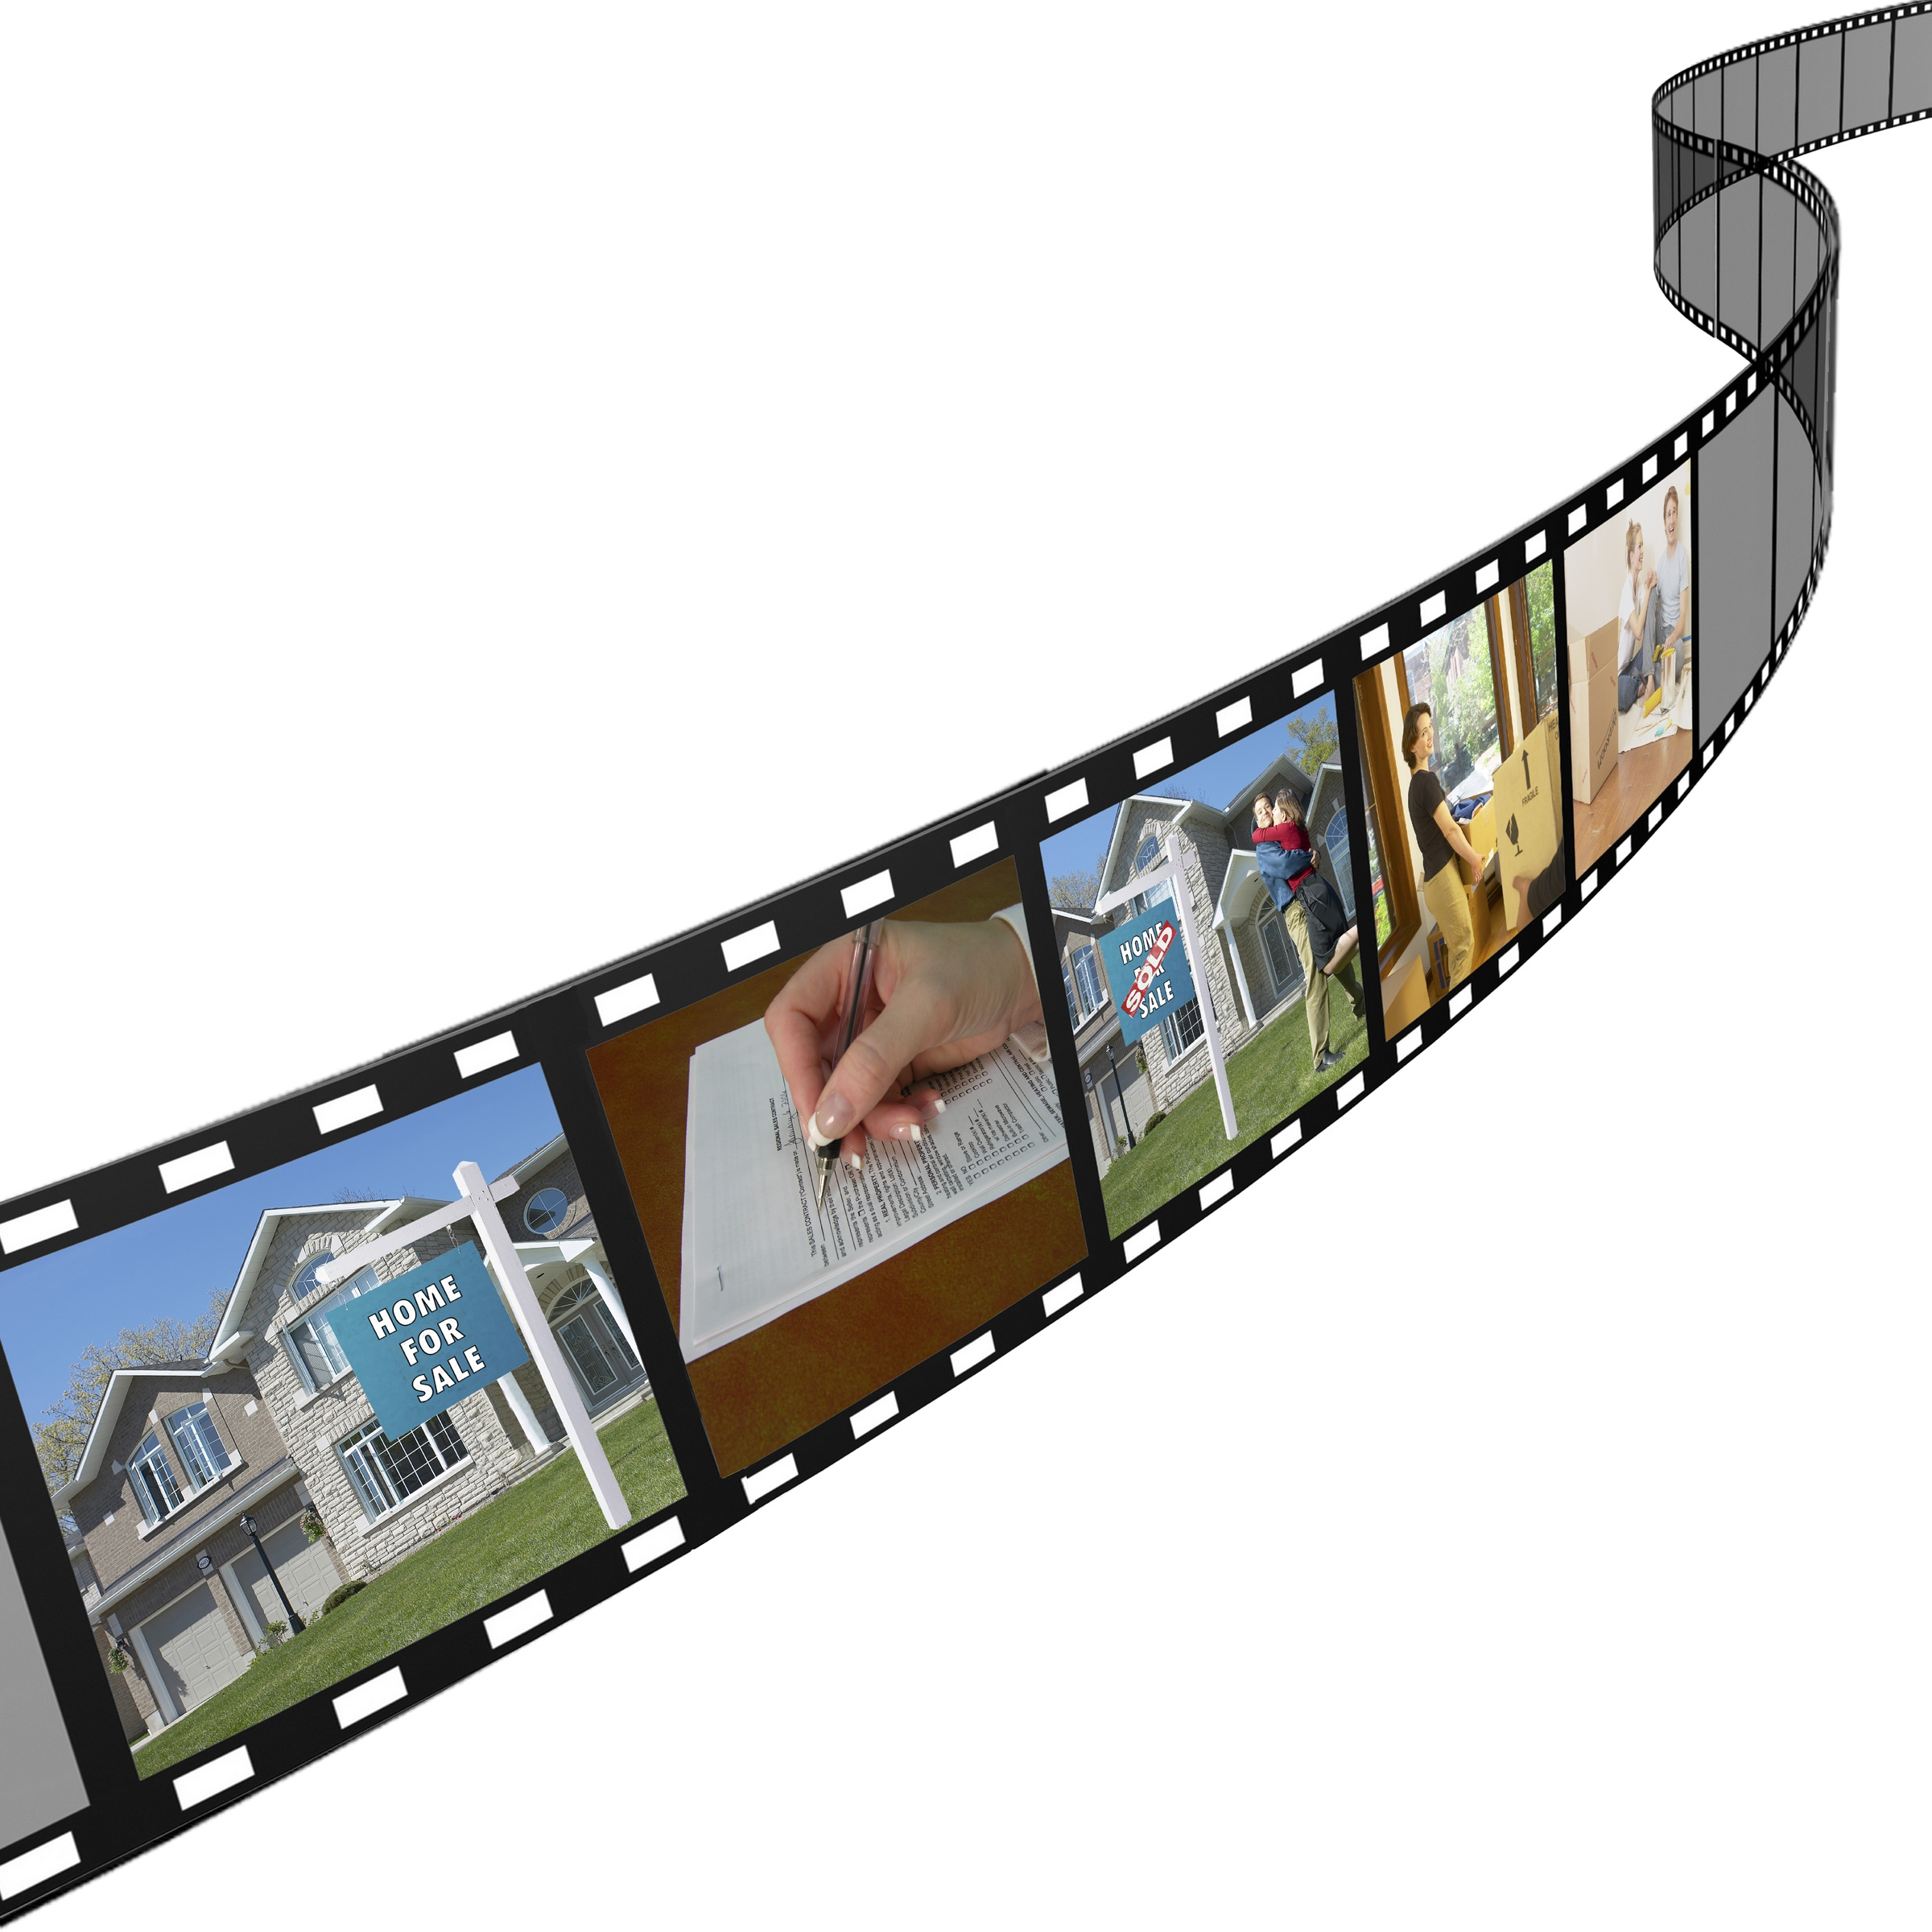 Film strip images of flat fee real estate listing service process including for sale sign, contract signing and MLS listing view